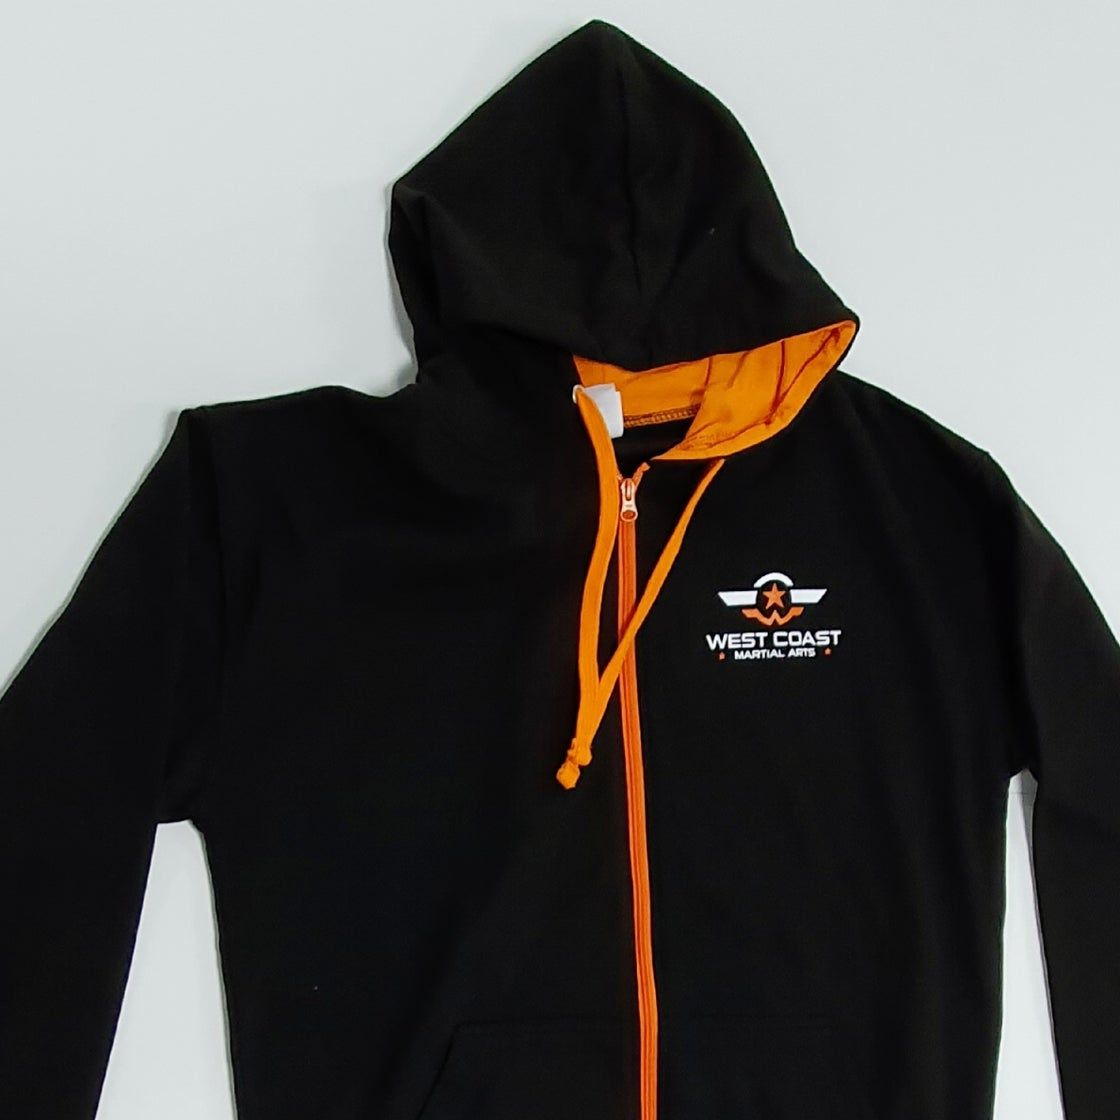 Image of Krav Hoodie with a Zippy - 'collection only'